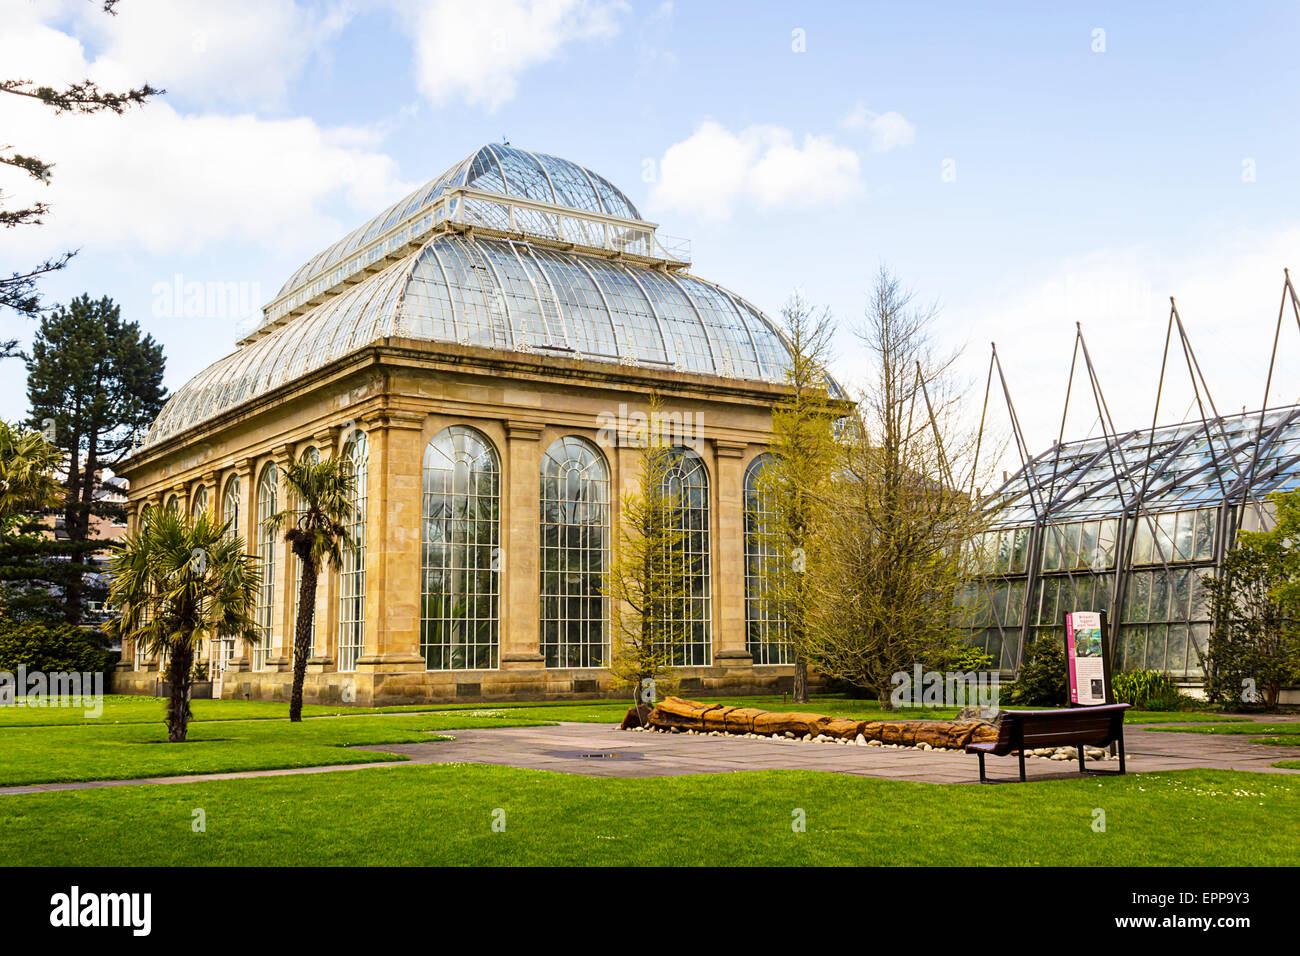 The Palm House in the Royal Botanic Gardens, Edinburgh, Scotland - Stock Image